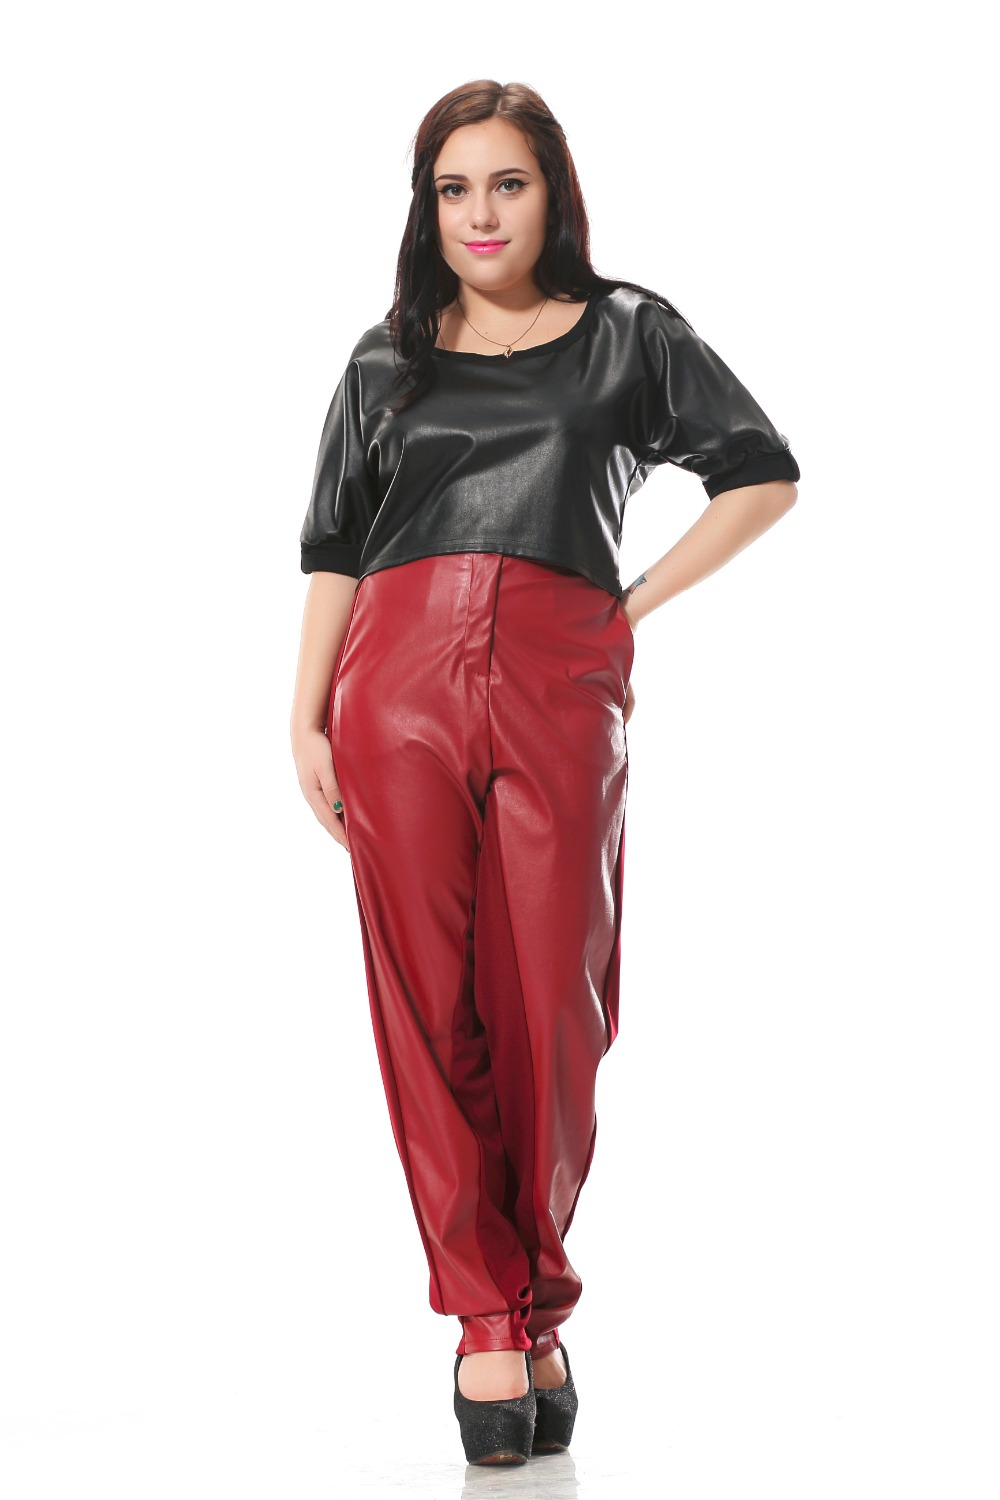 Buy Plus Size Womens Faux Leather Jackets at Macy's. Shop the Latest Plus Size Faux Leather Jackets for Women Online at newuz.tk FREE SHIPPING AVAILABLE! Macy's Presents: The Edit - A curated mix of fashion and inspiration Check It Out.